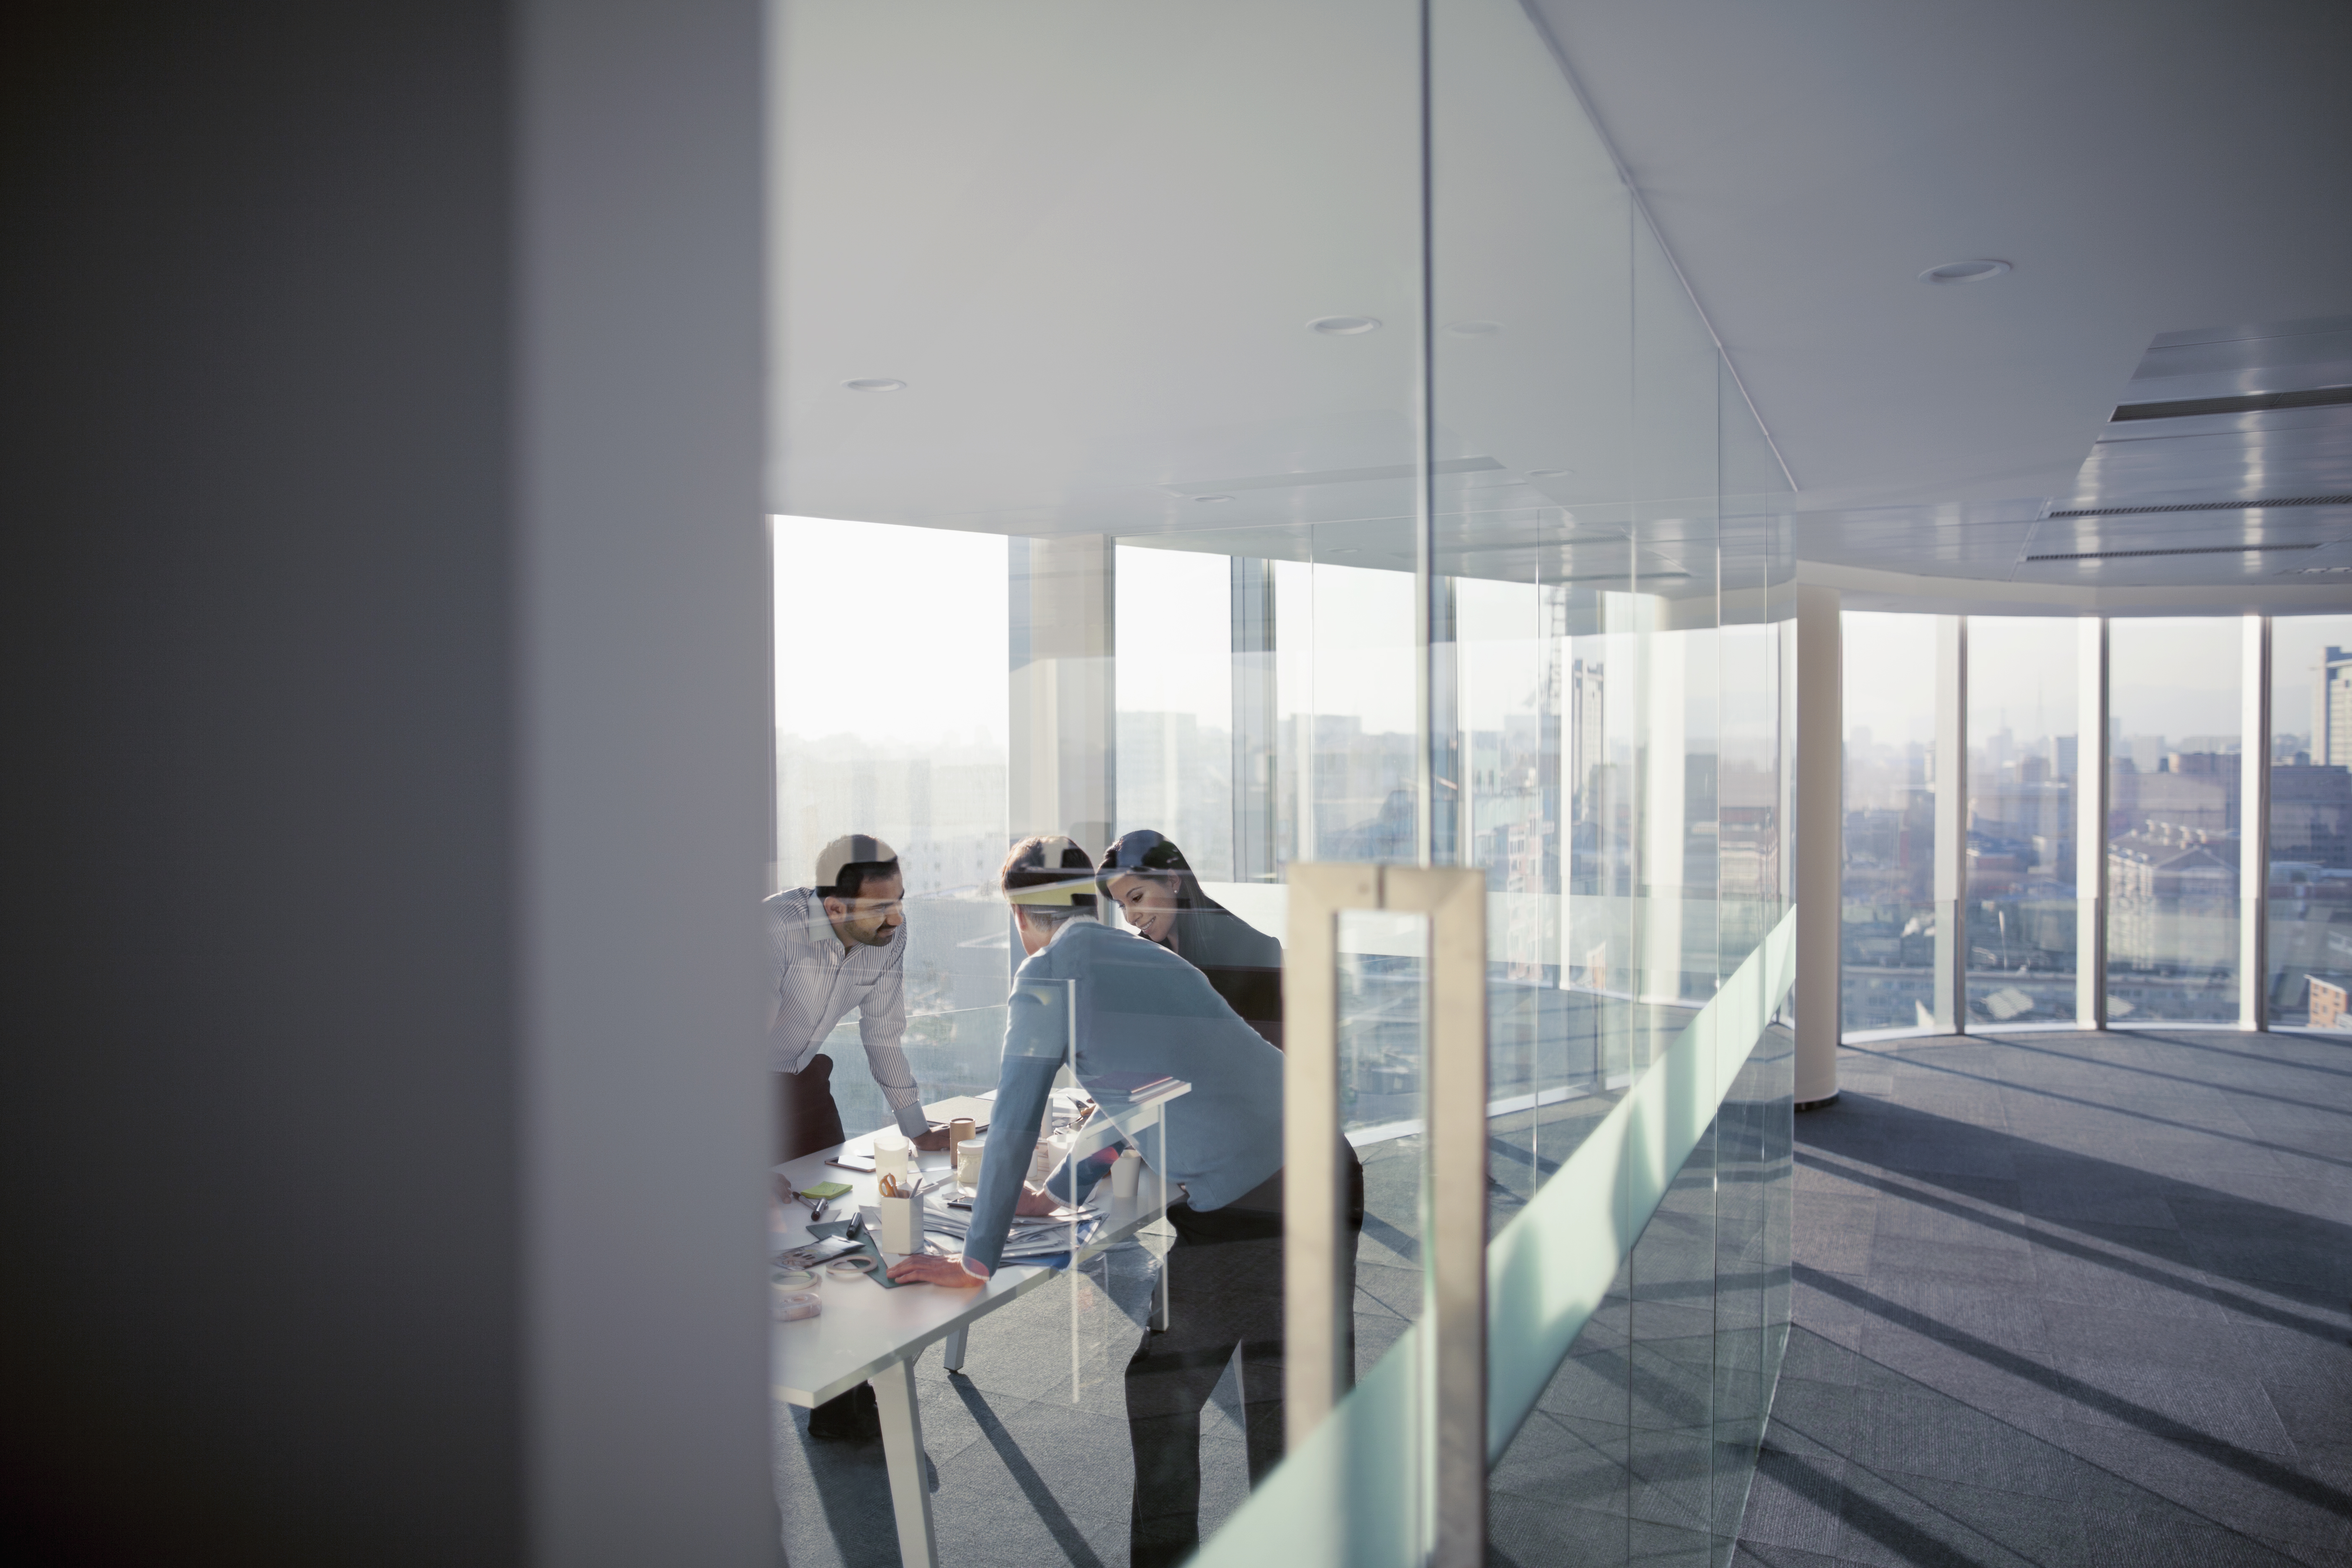 Two men and a woman crowded around a conference table in a high-rise office seen through wall of glass